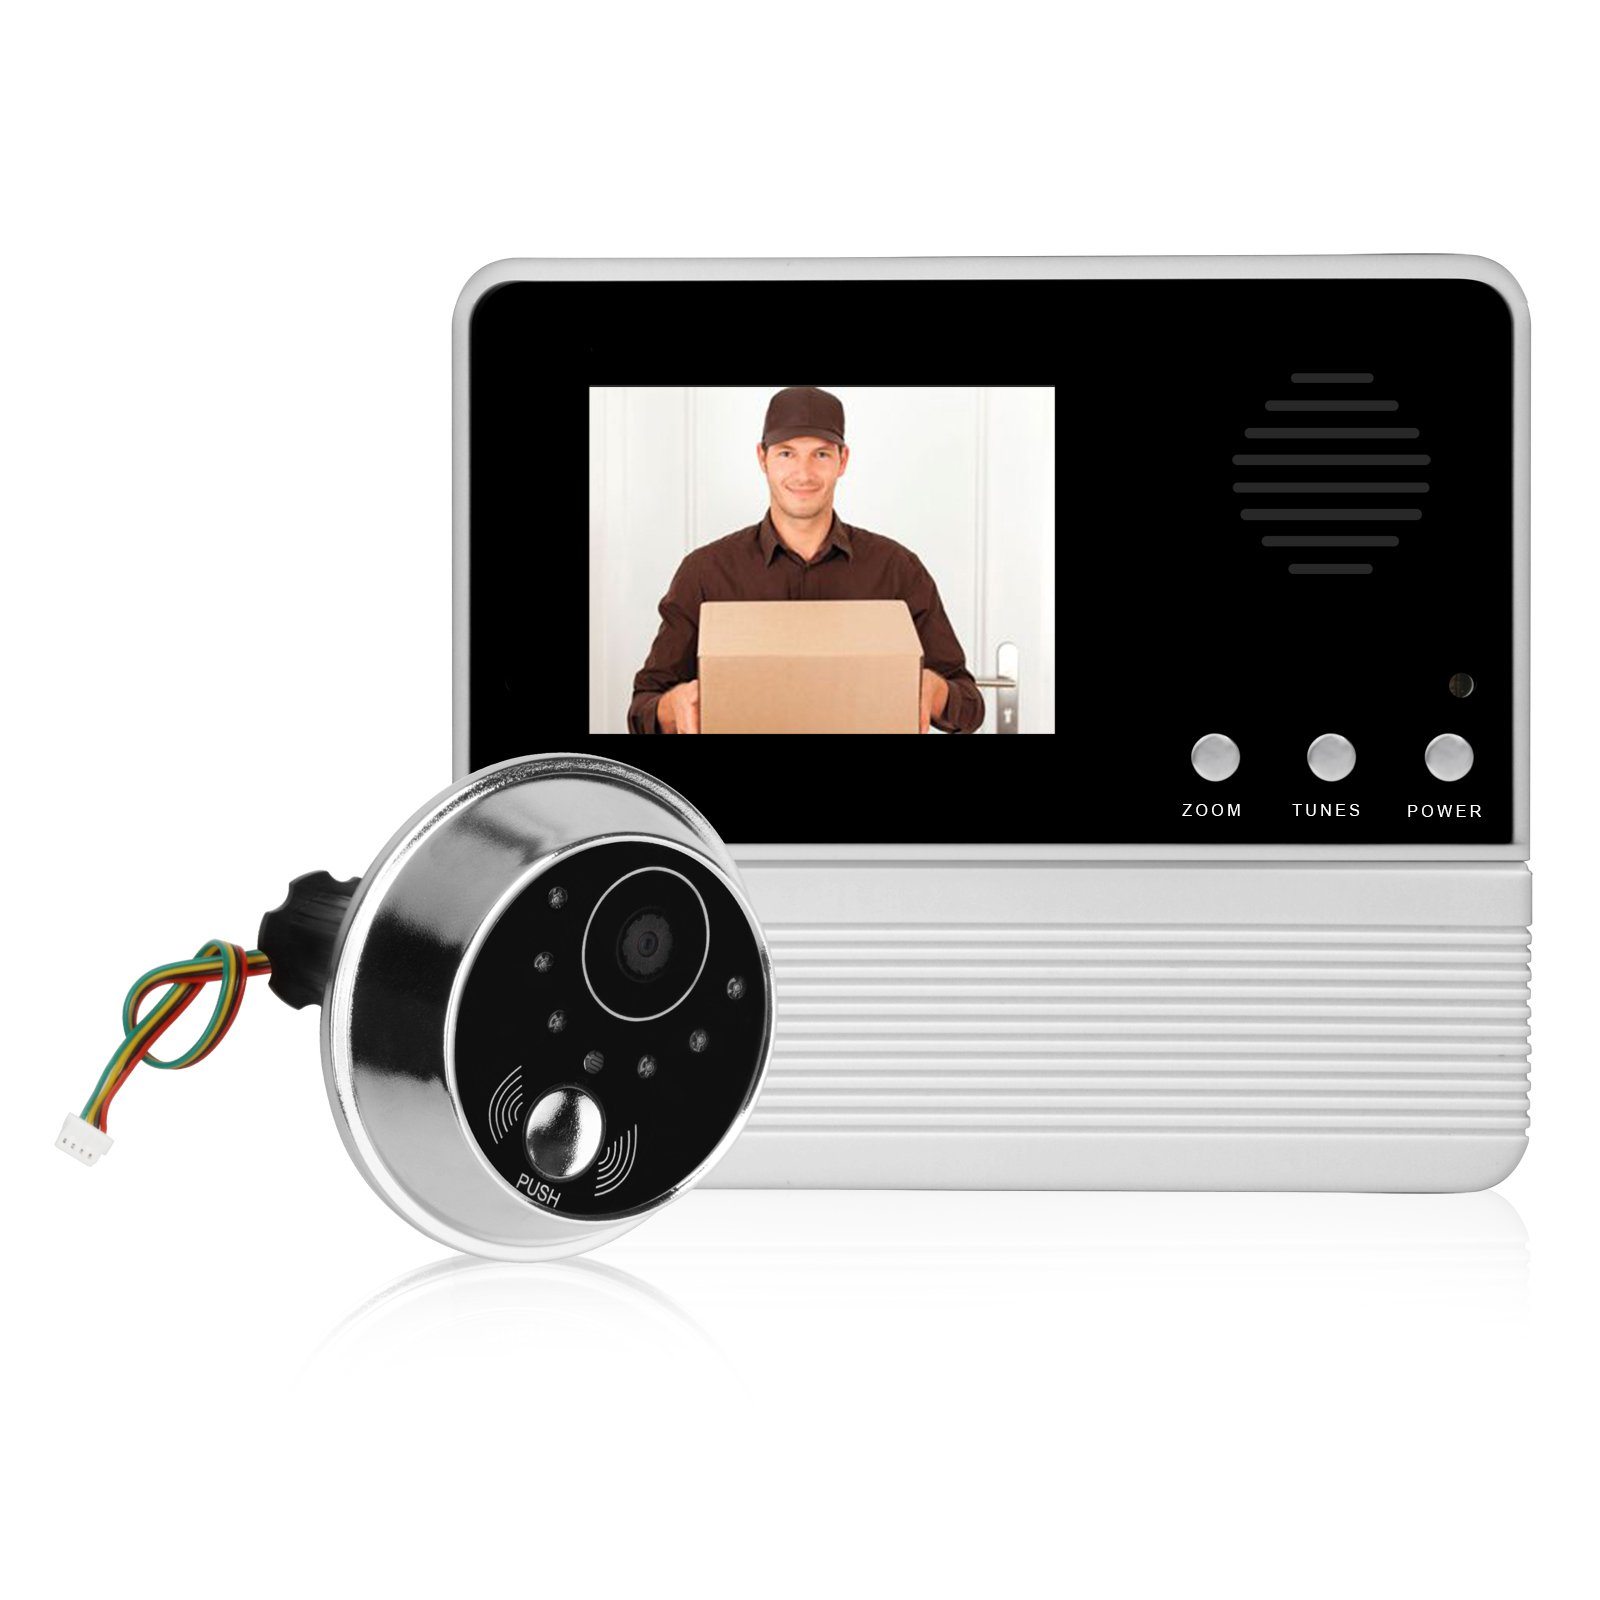 Elderly TFT-LCD Doorbell Peephole Viewer Camera Secure, 2.8 inch Screen, 30 Million Mega Pixel, Night Vision, Battery Powered, 90°View Angle(No WiFi or Smart Phone Required)